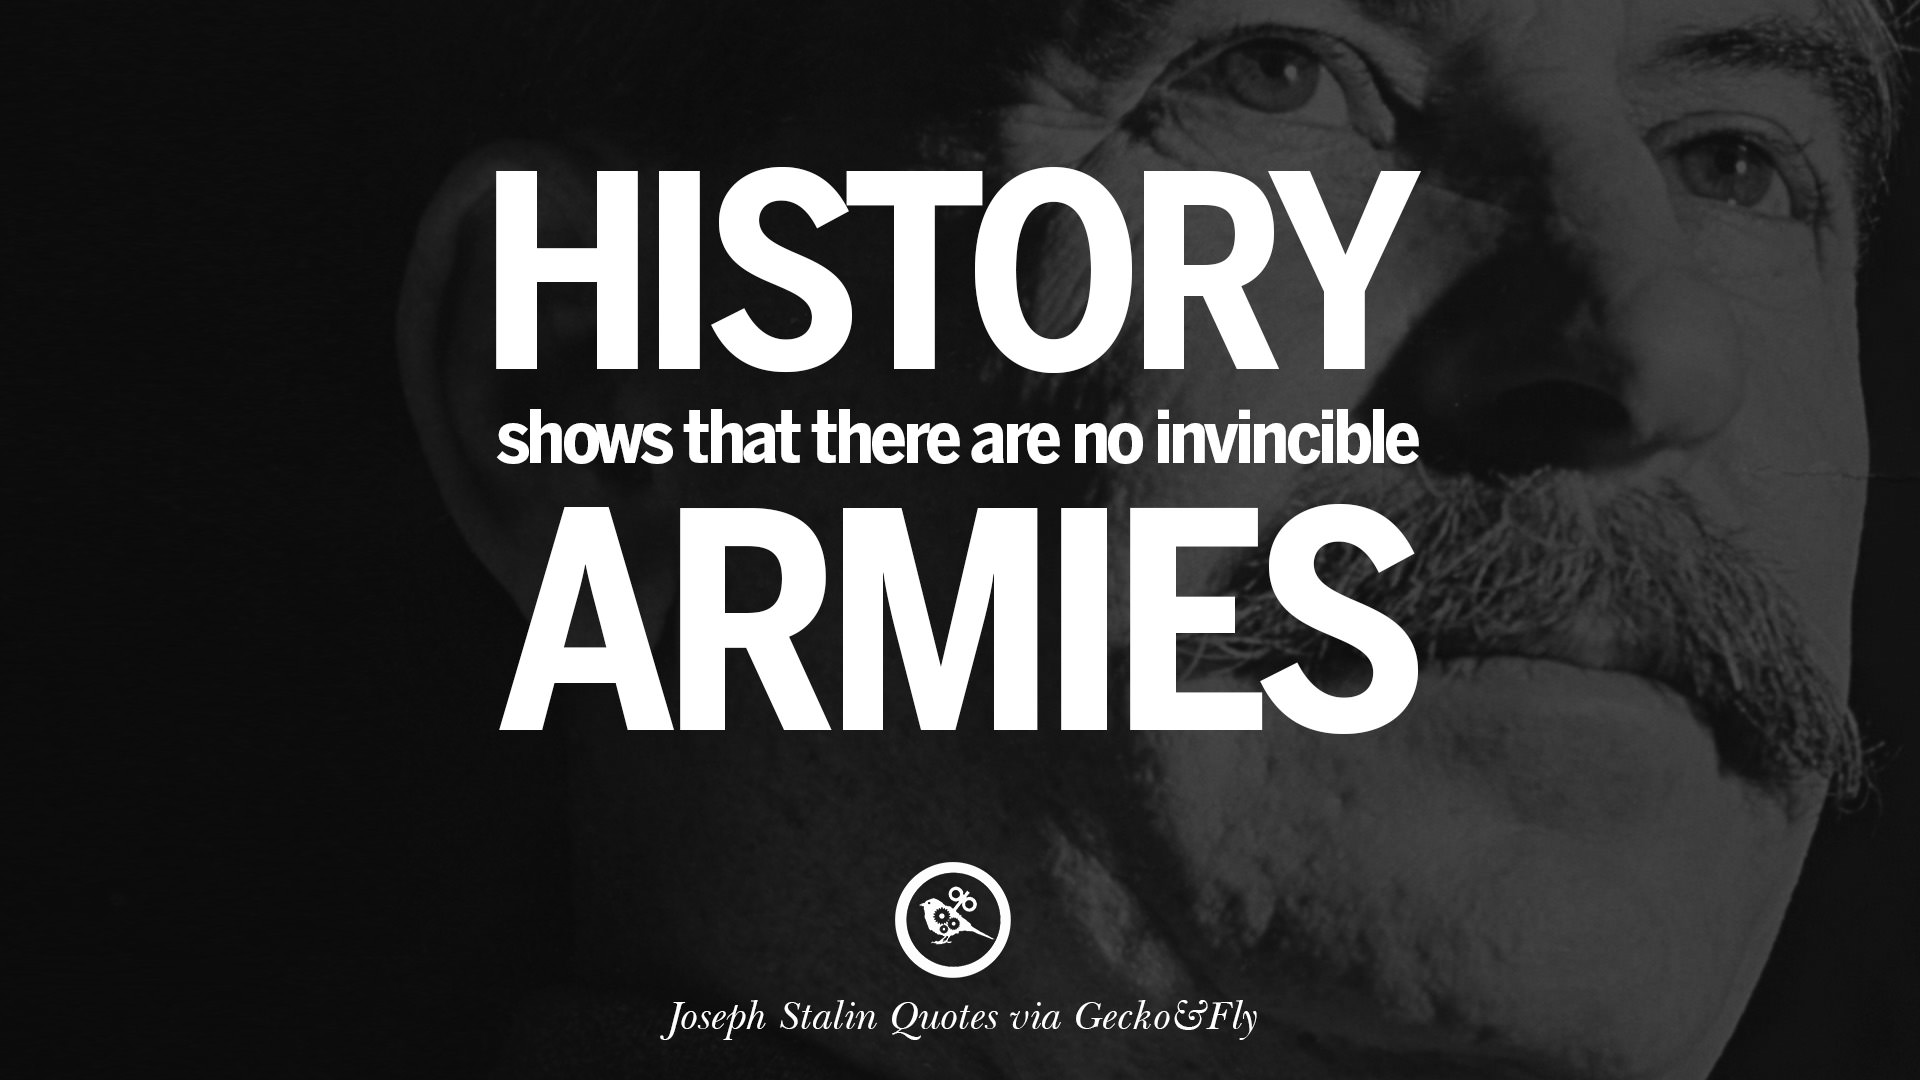 stalin s effects on ww2 Within the soviet union there were two forces at work during the second world war stalin's regime and russian nationalism stayed in stalin's shadow.